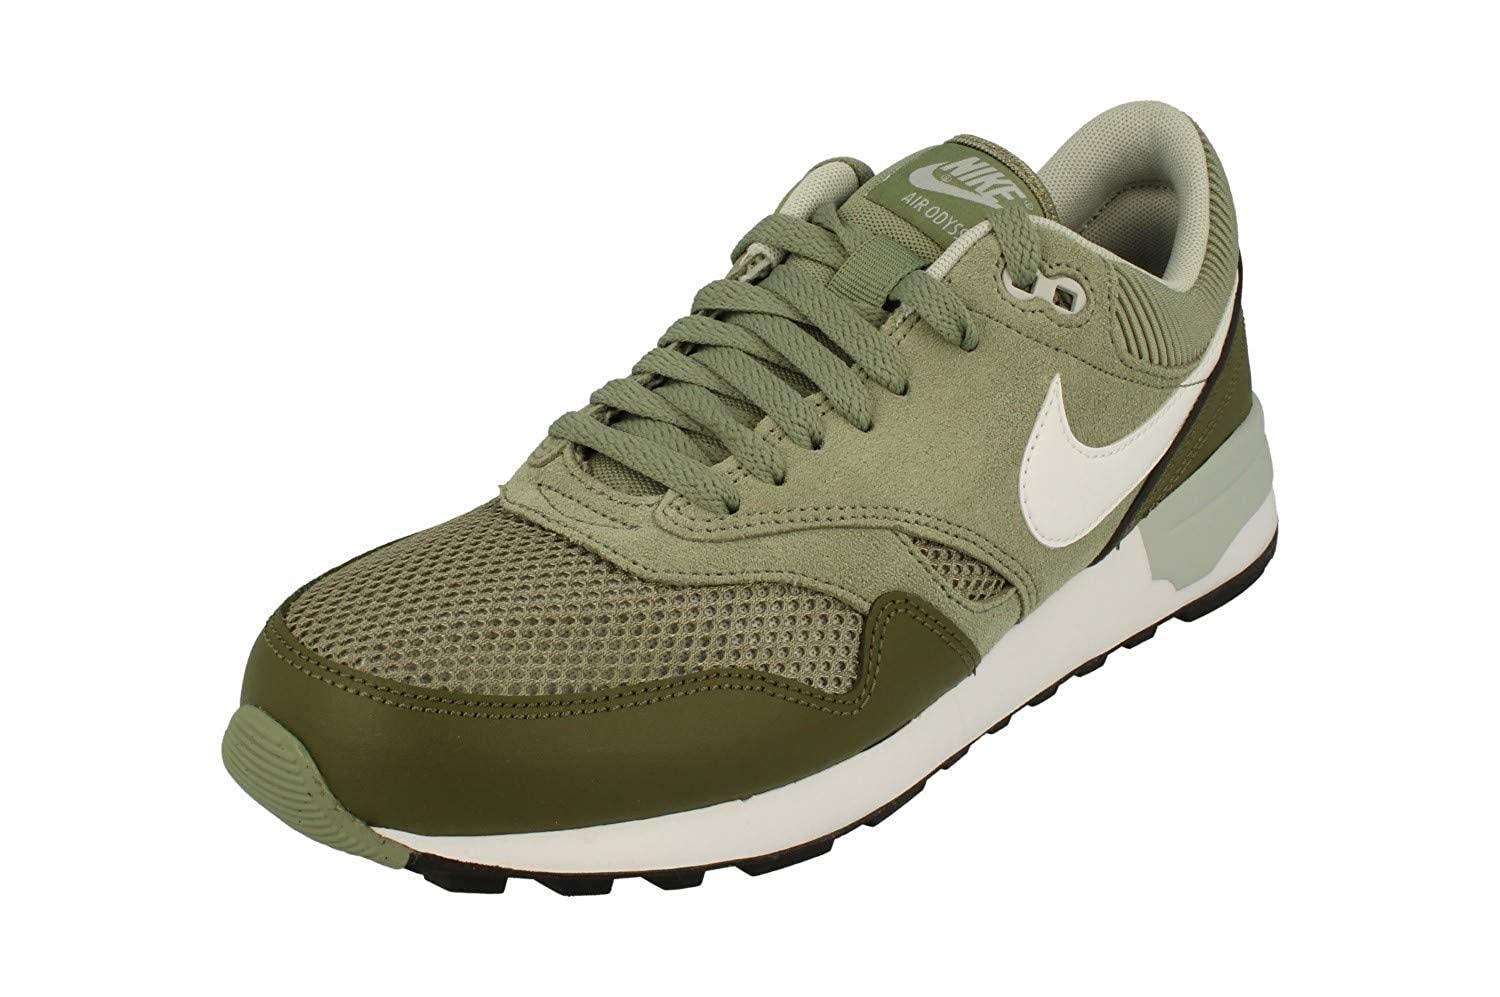 nouveau concept 00562 164b4 Nike Men's Air Odyssey Running Shoes